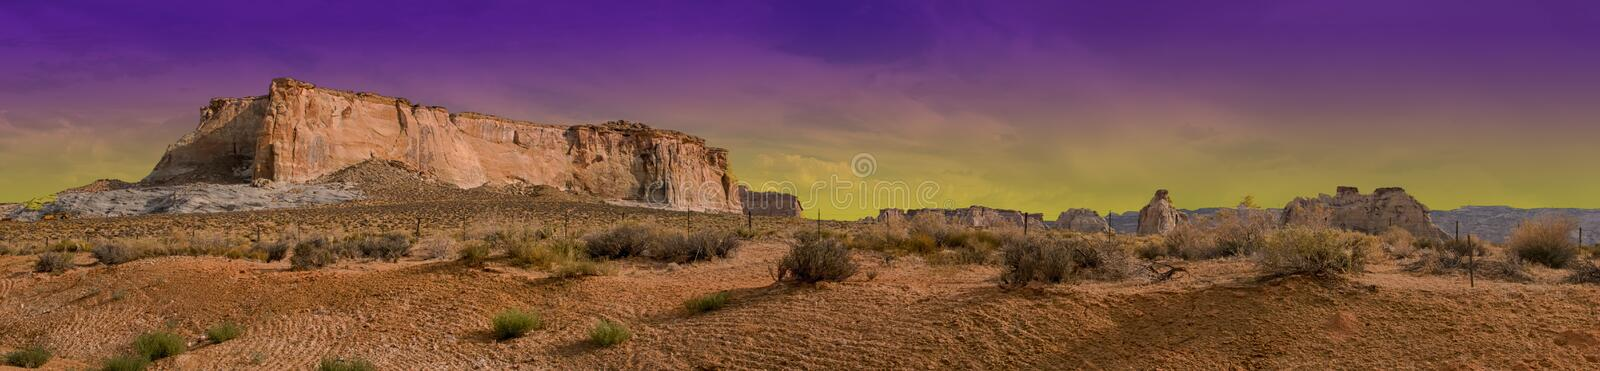 Glen Canyon Arizona Desert Purple Haze Sky imagem de stock royalty free